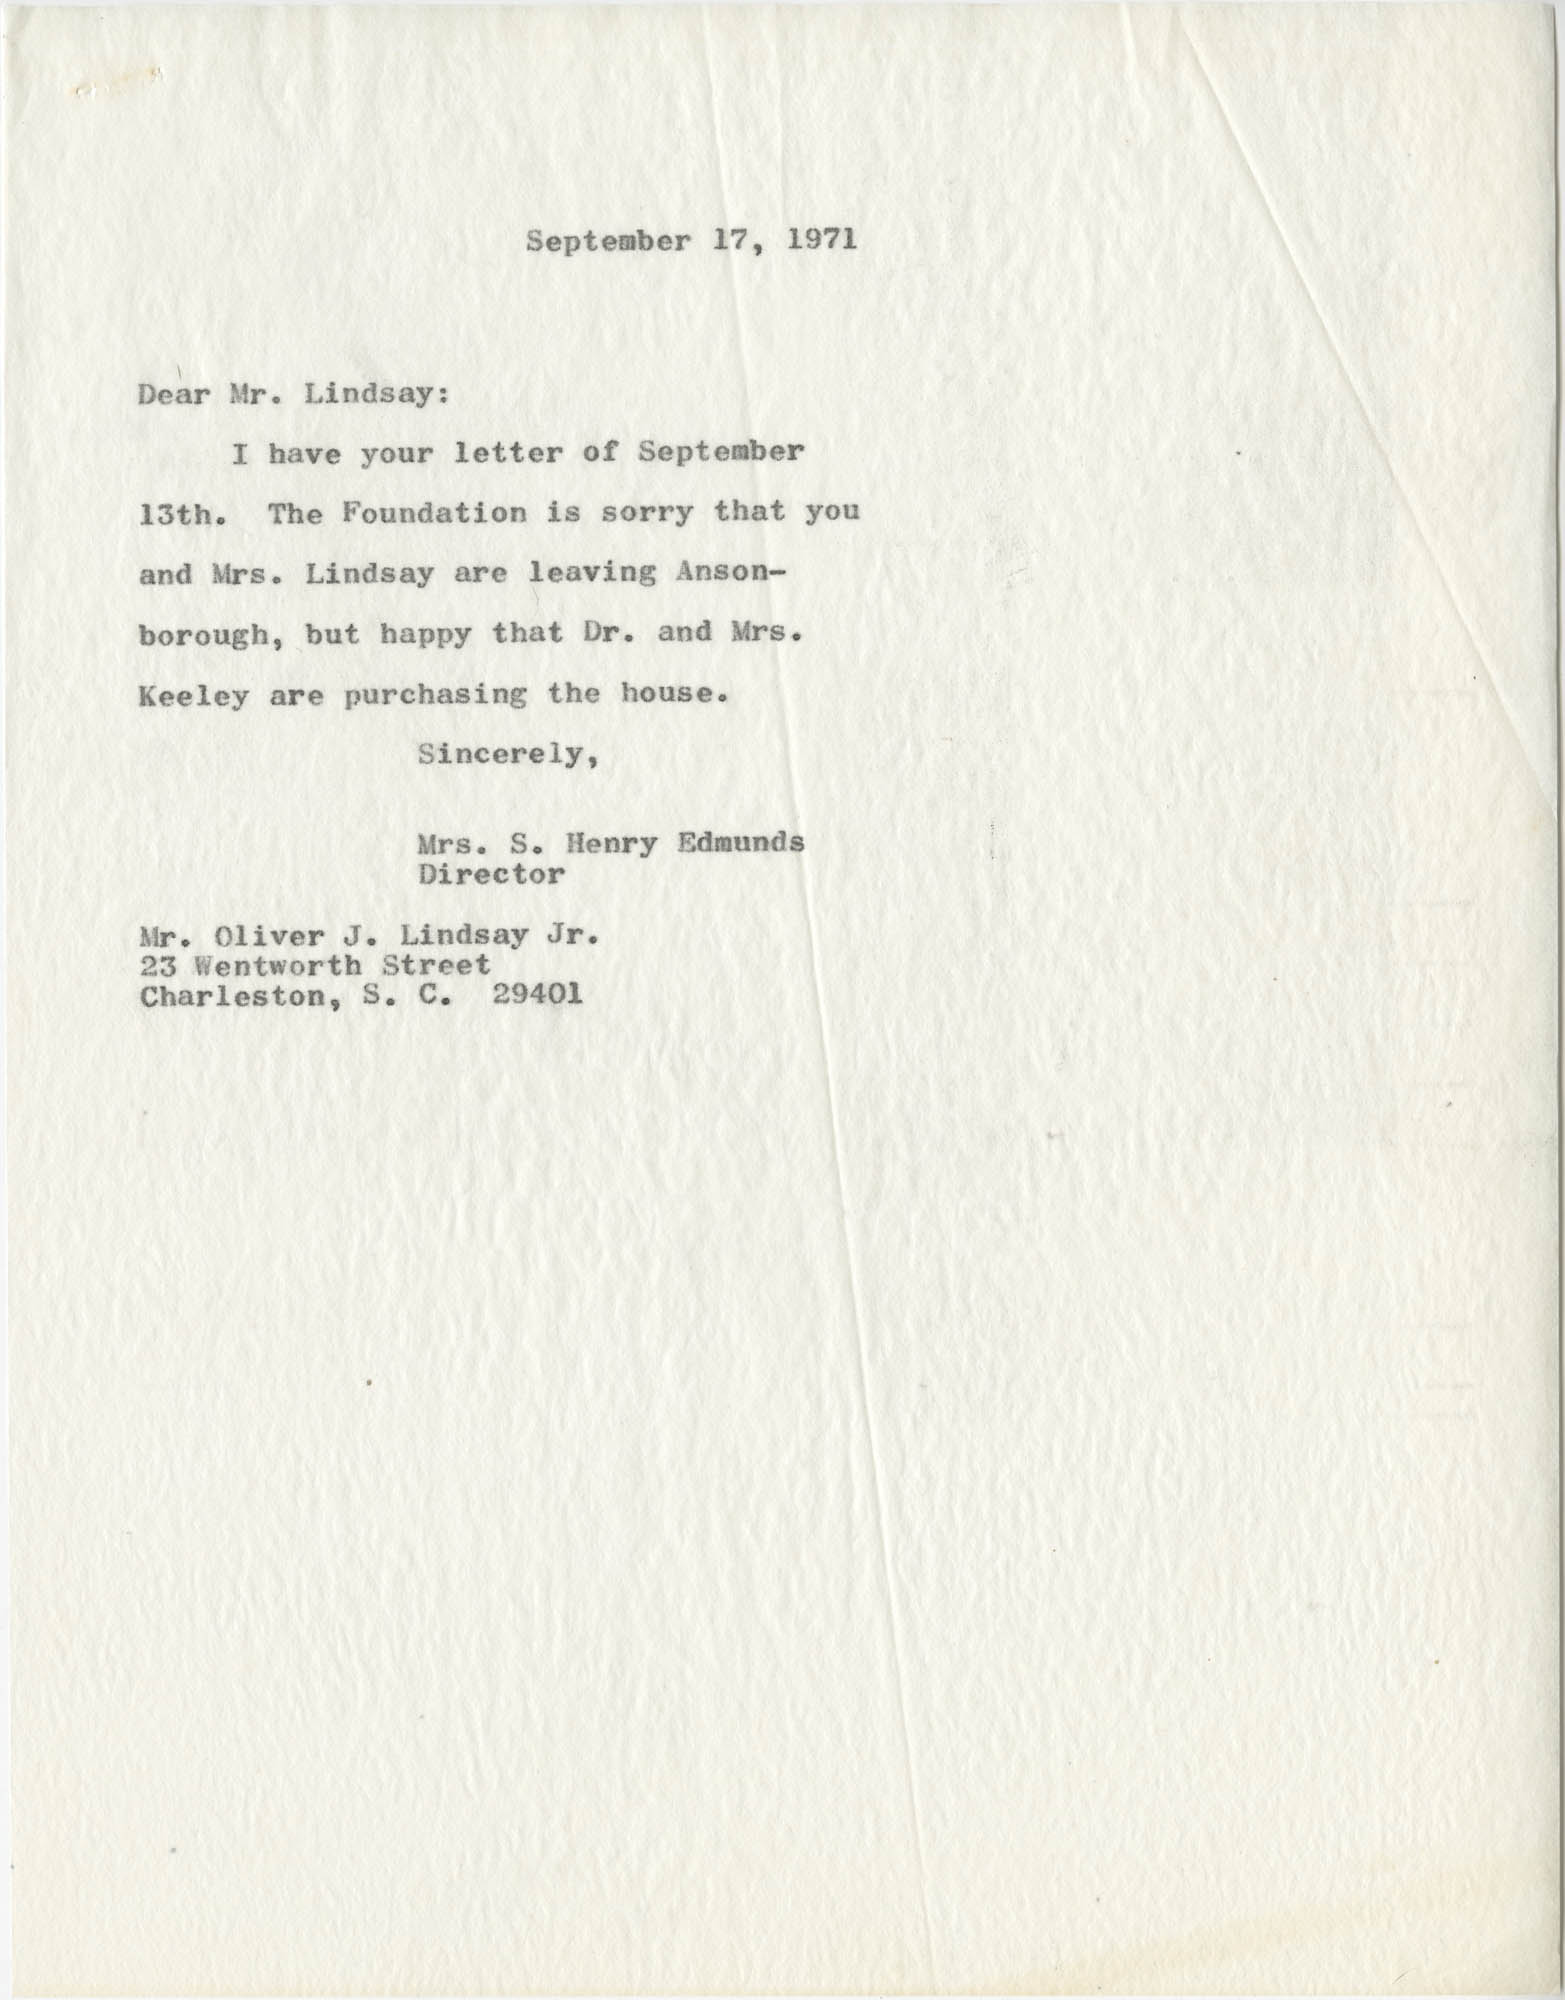 Letter from Mrs. S. Henry Edmunds to Mr. O. J. Lindsay, Jr.